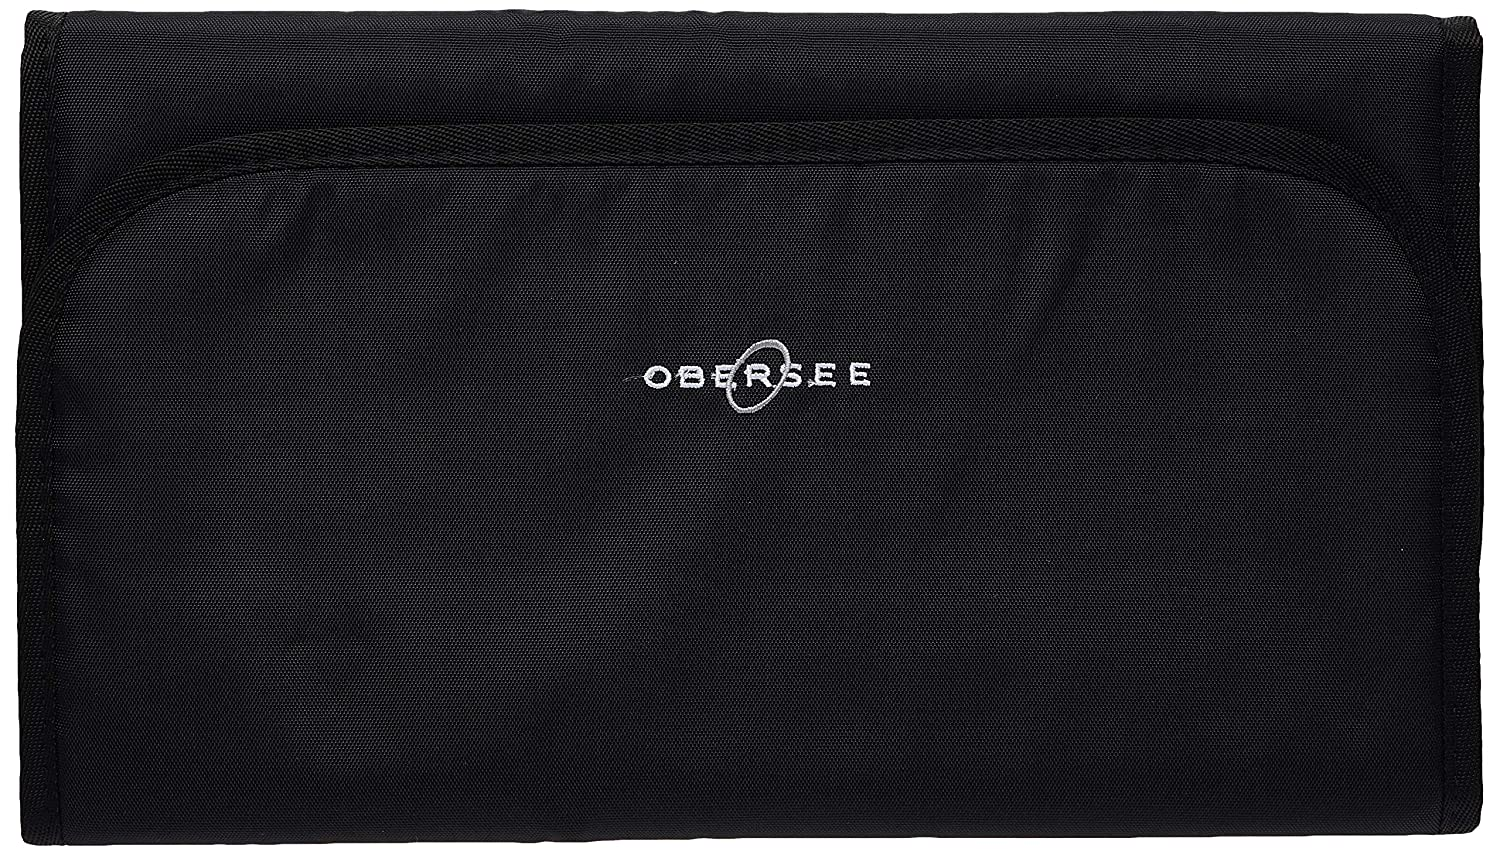 Obersee Baby Changing Mat, Black